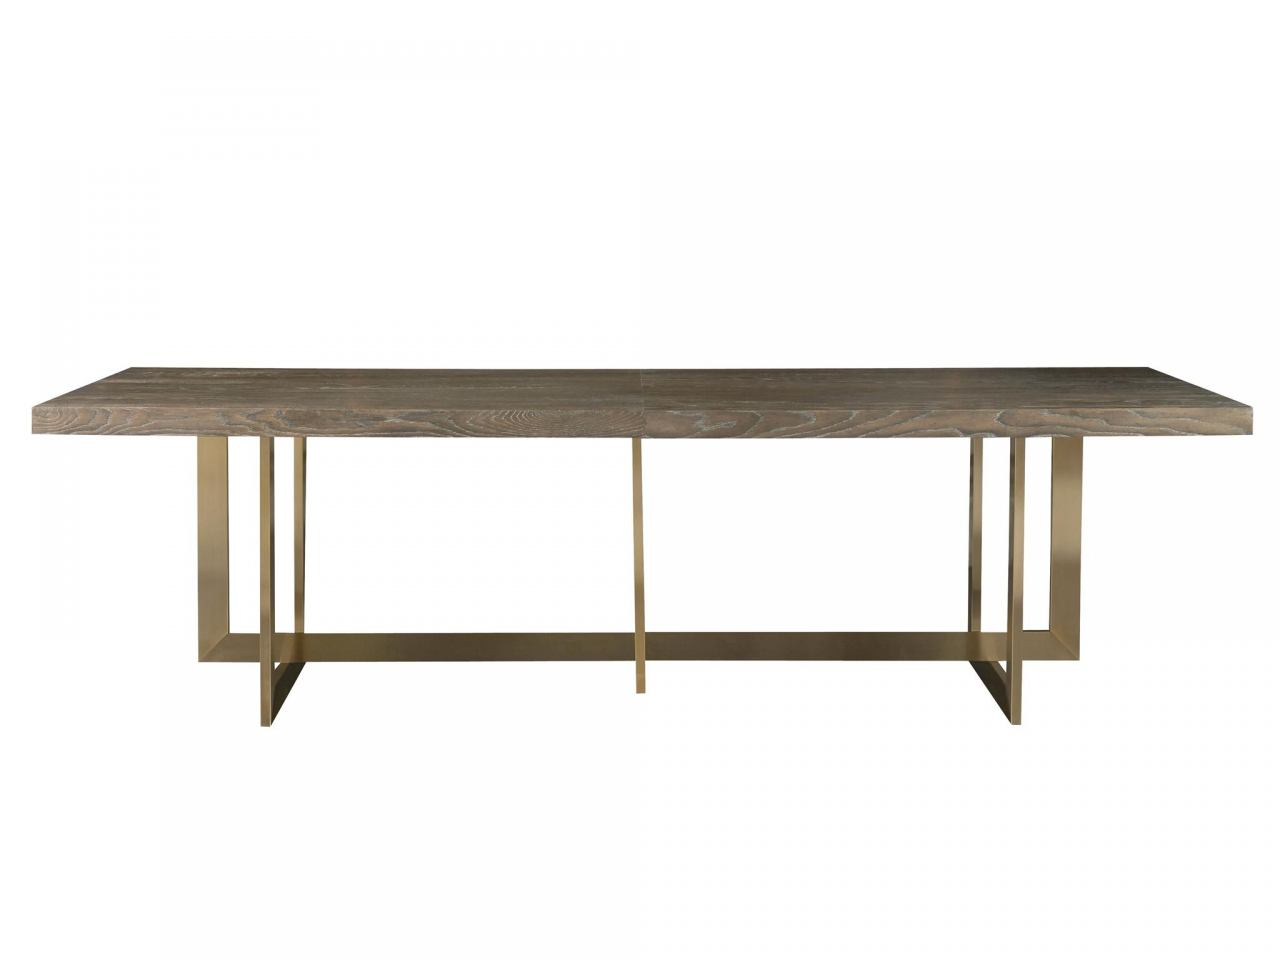 Universal Furniture Modern Jamison Dining Table in Charcoal 642755